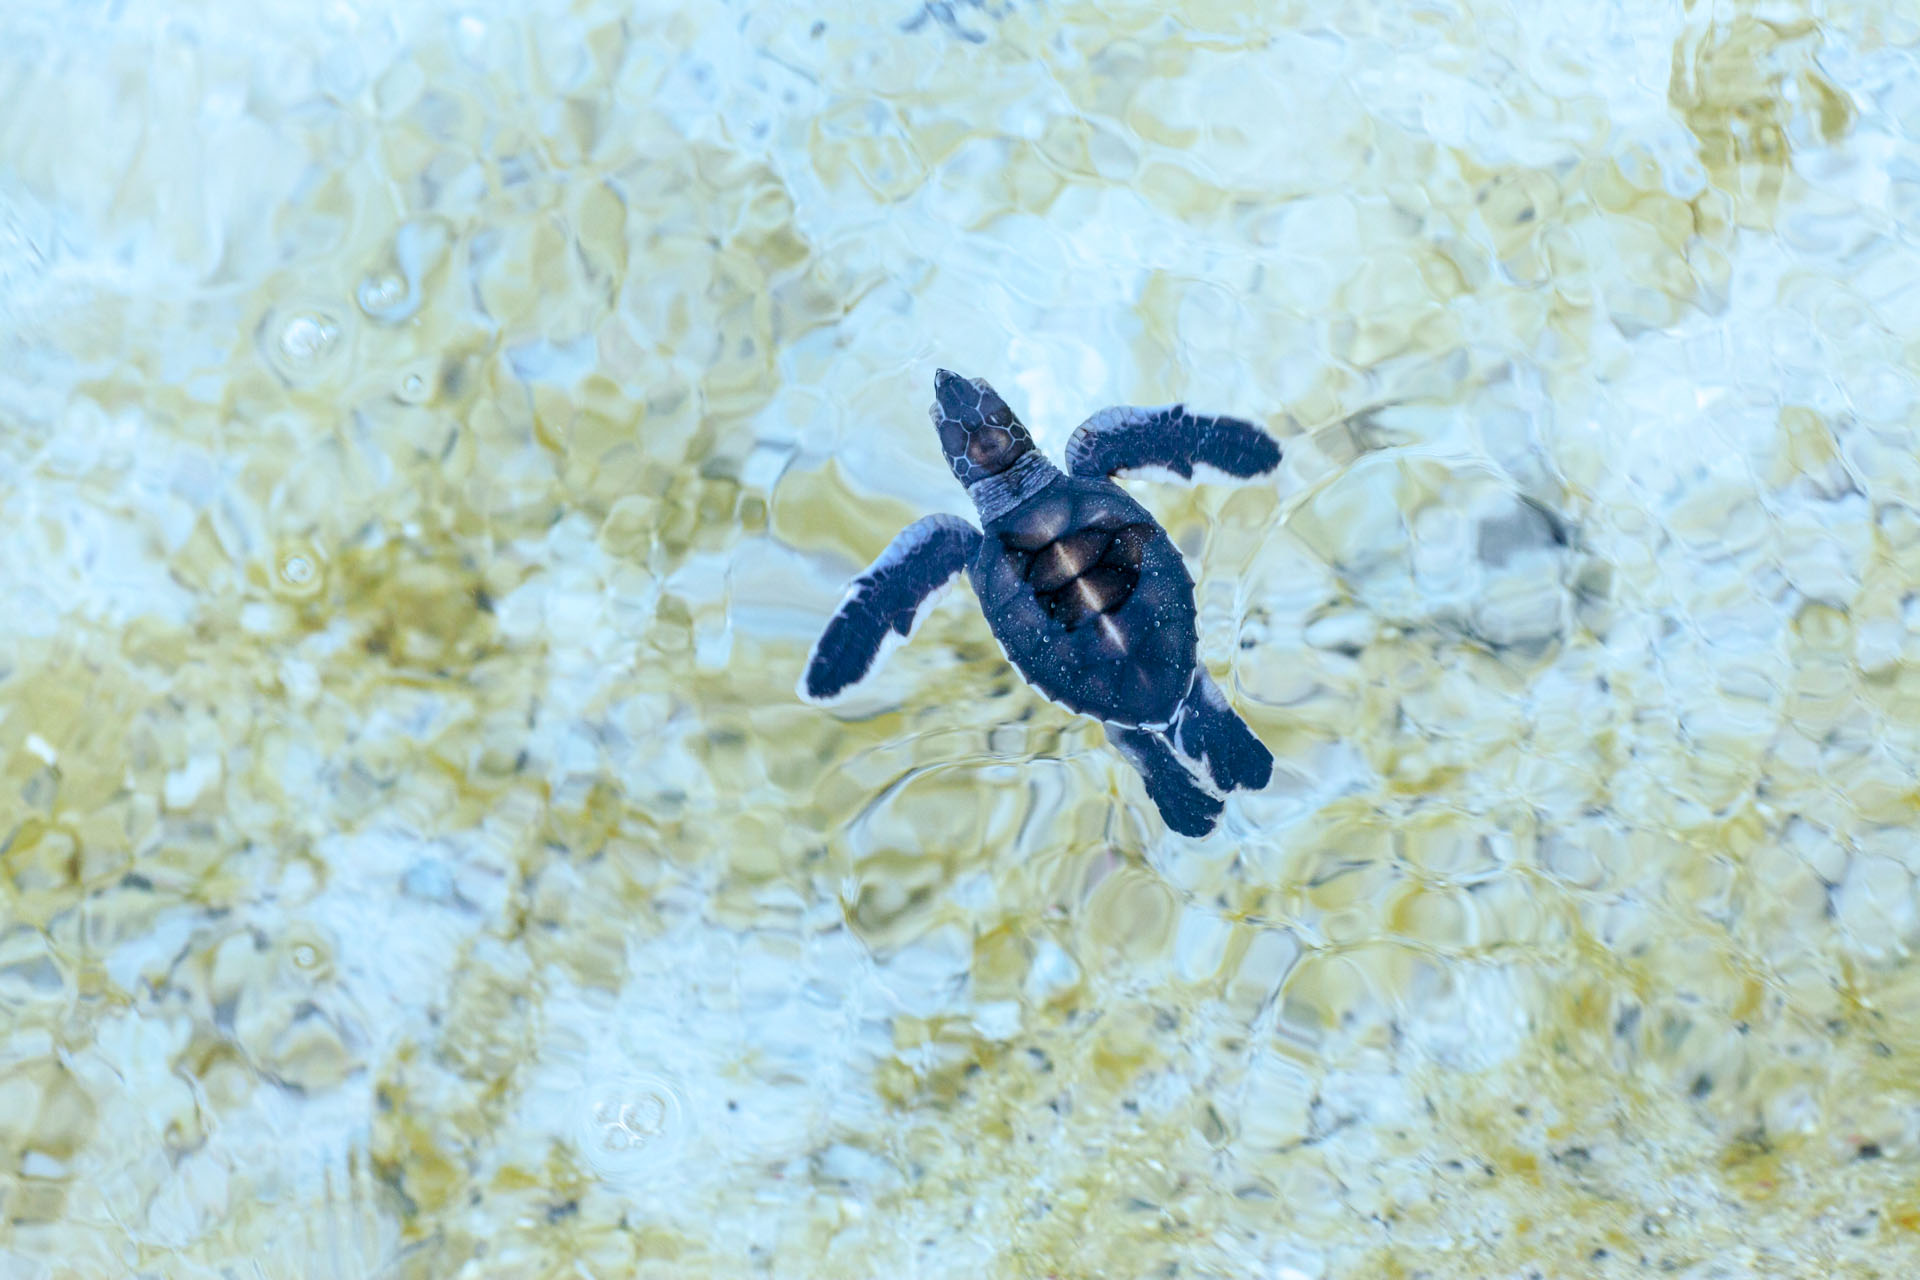 Turtles born on Heron Island are mostly females because the deep sand is quite warm. Sex is determined by incubation temperature (climate change suddenly poses this most unique challenge for an animal that has existed for millions of years).